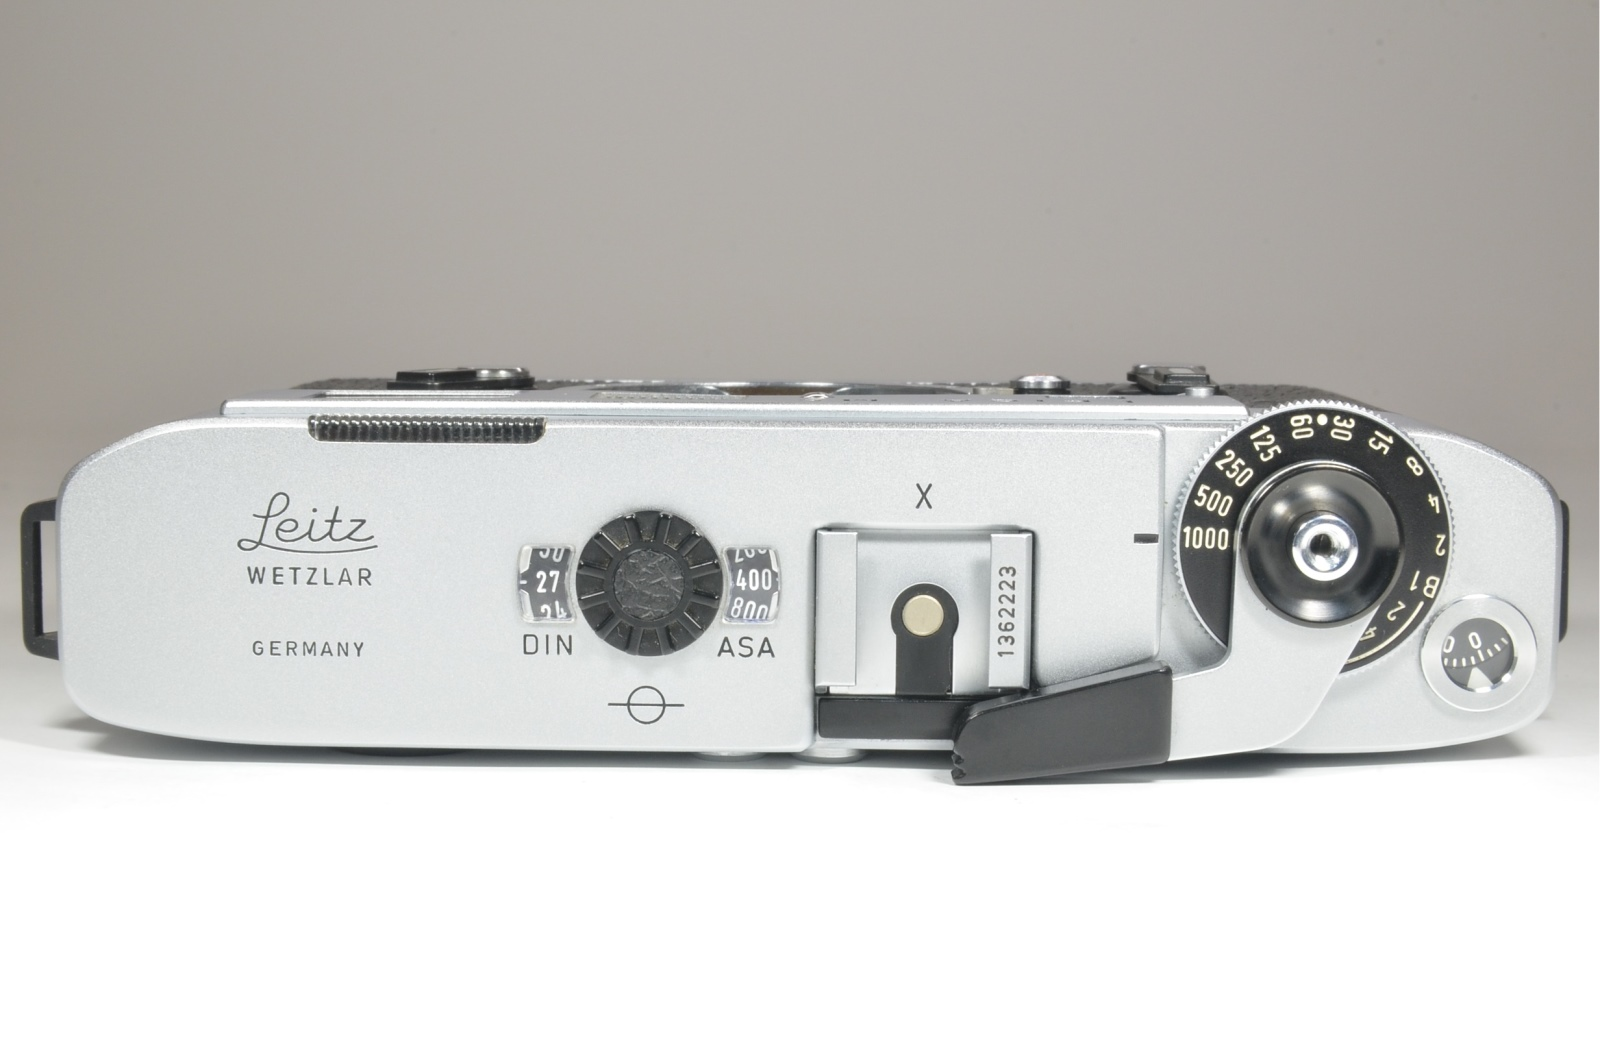 leica m5 chrome 3 lug year 1973 rangefinder camera with half case